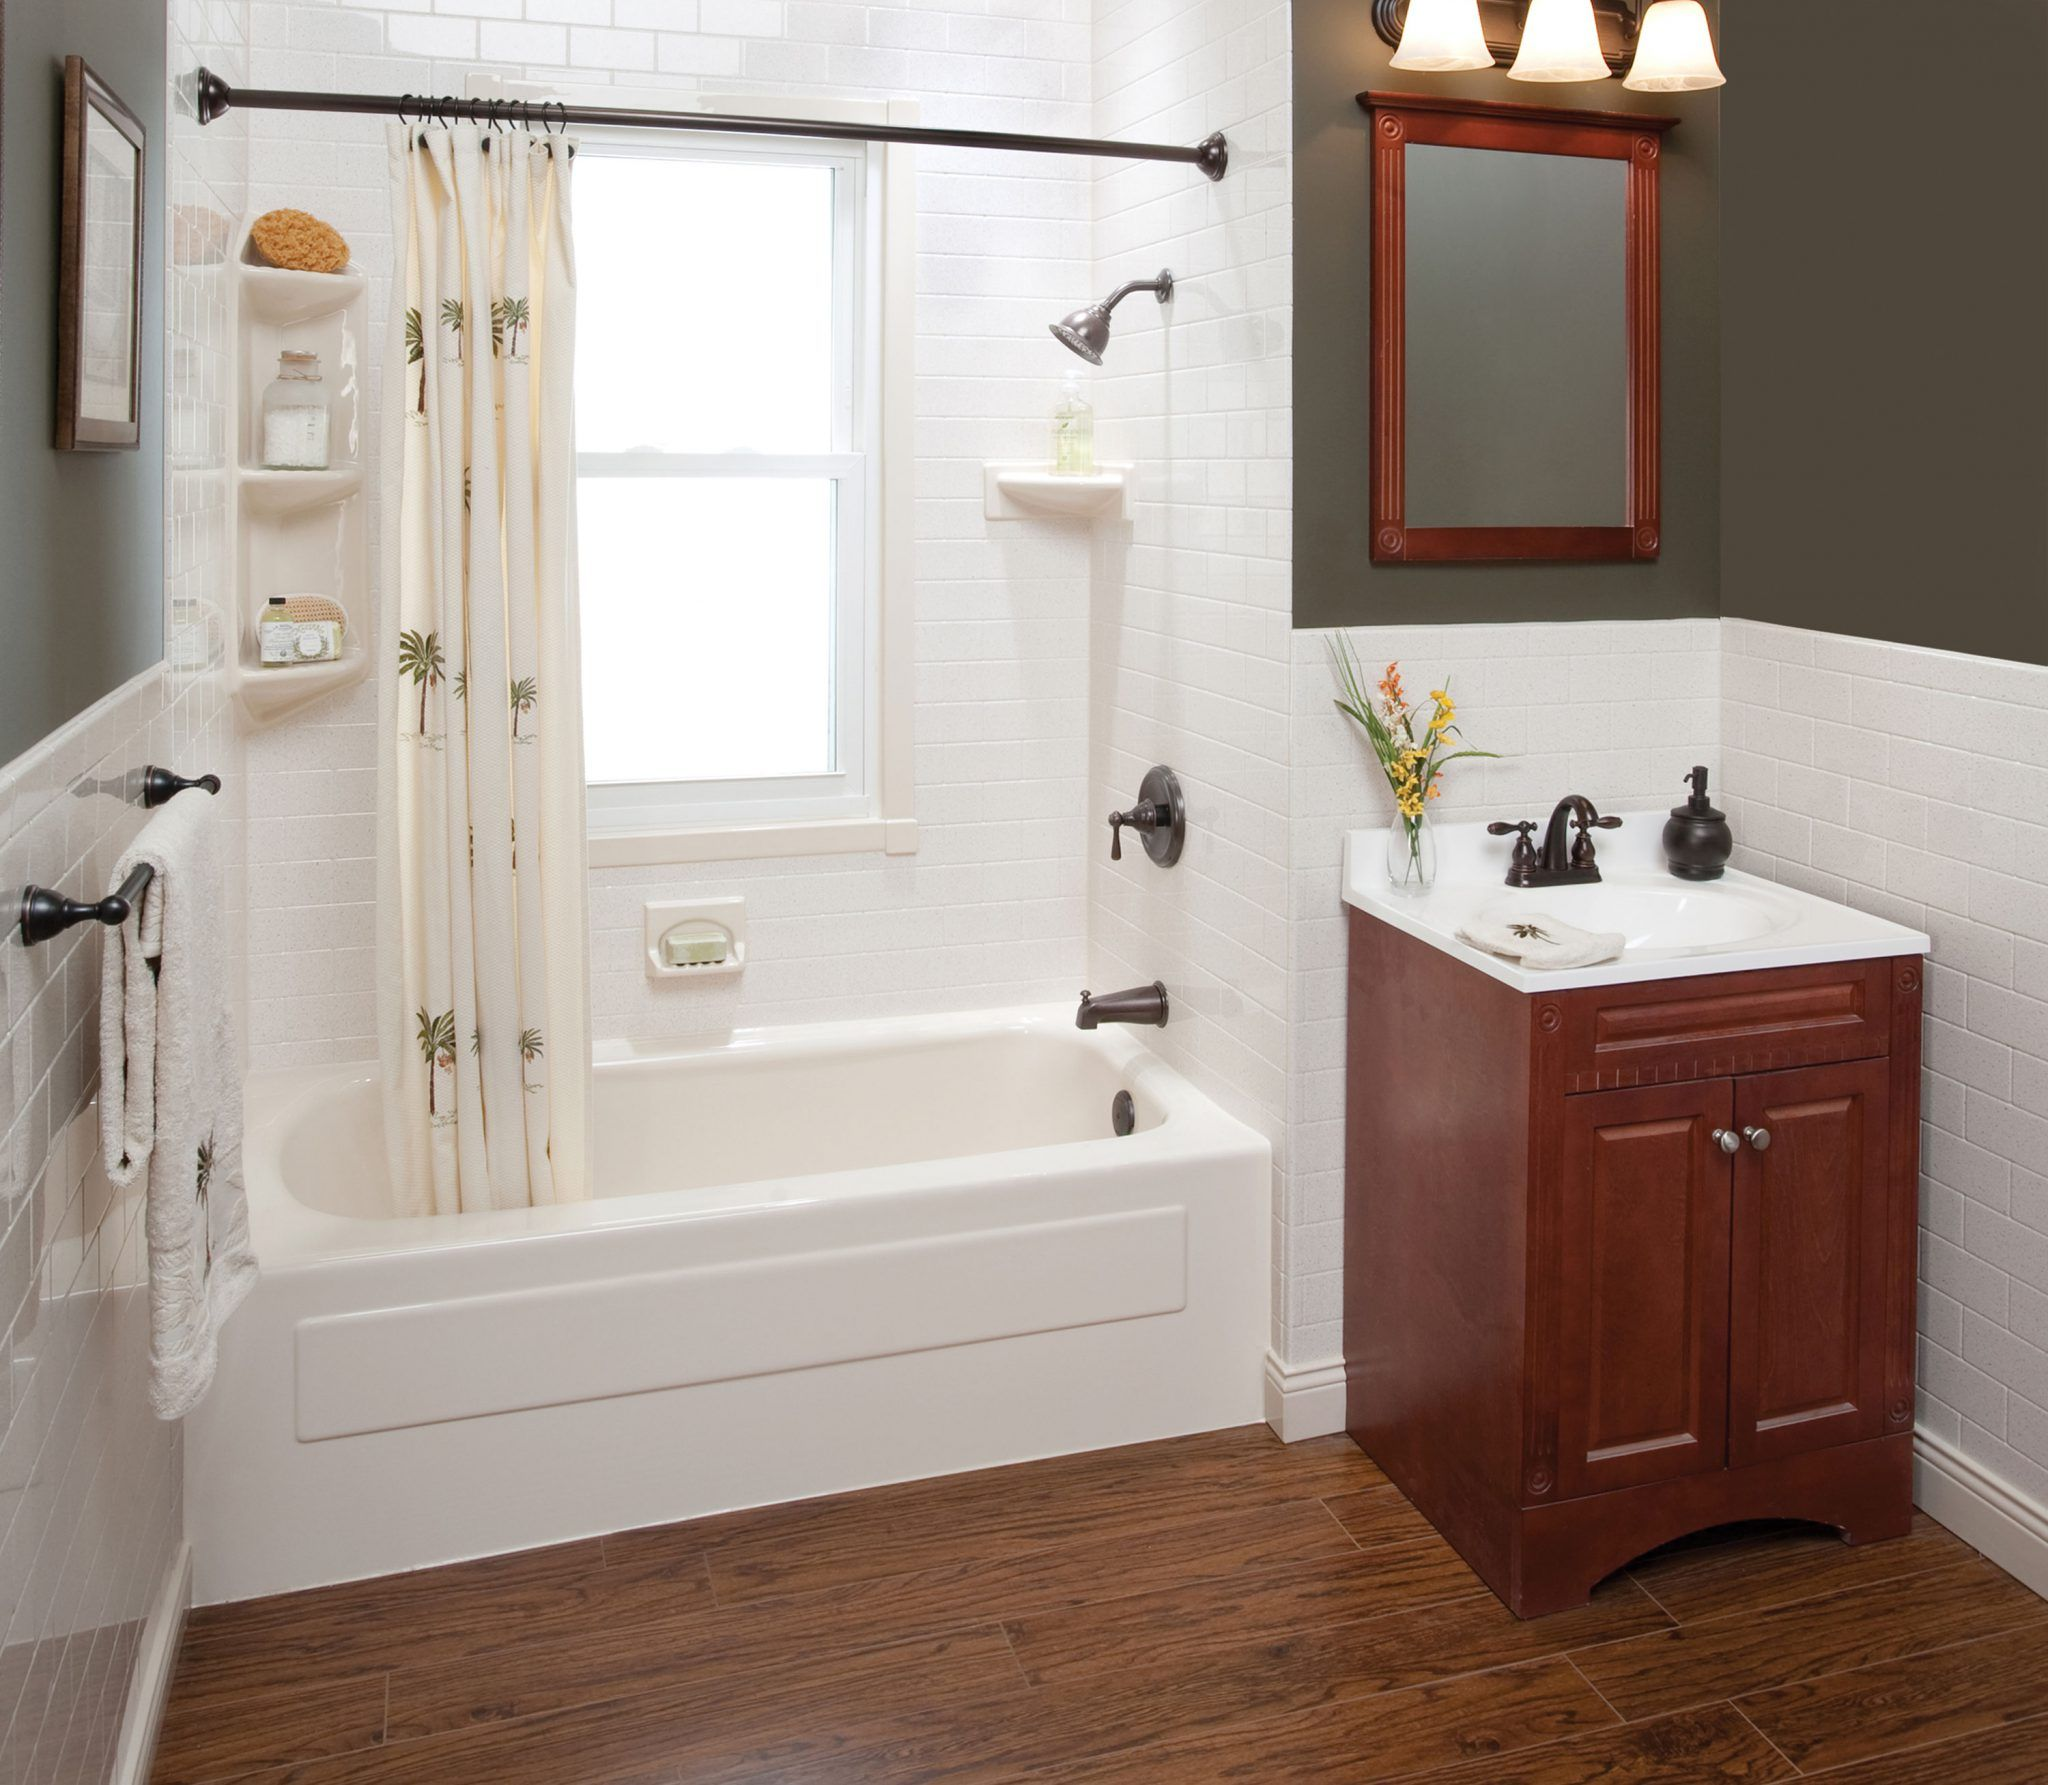 How Much Does Bath Fitter Cost Cheap bathroom remodel